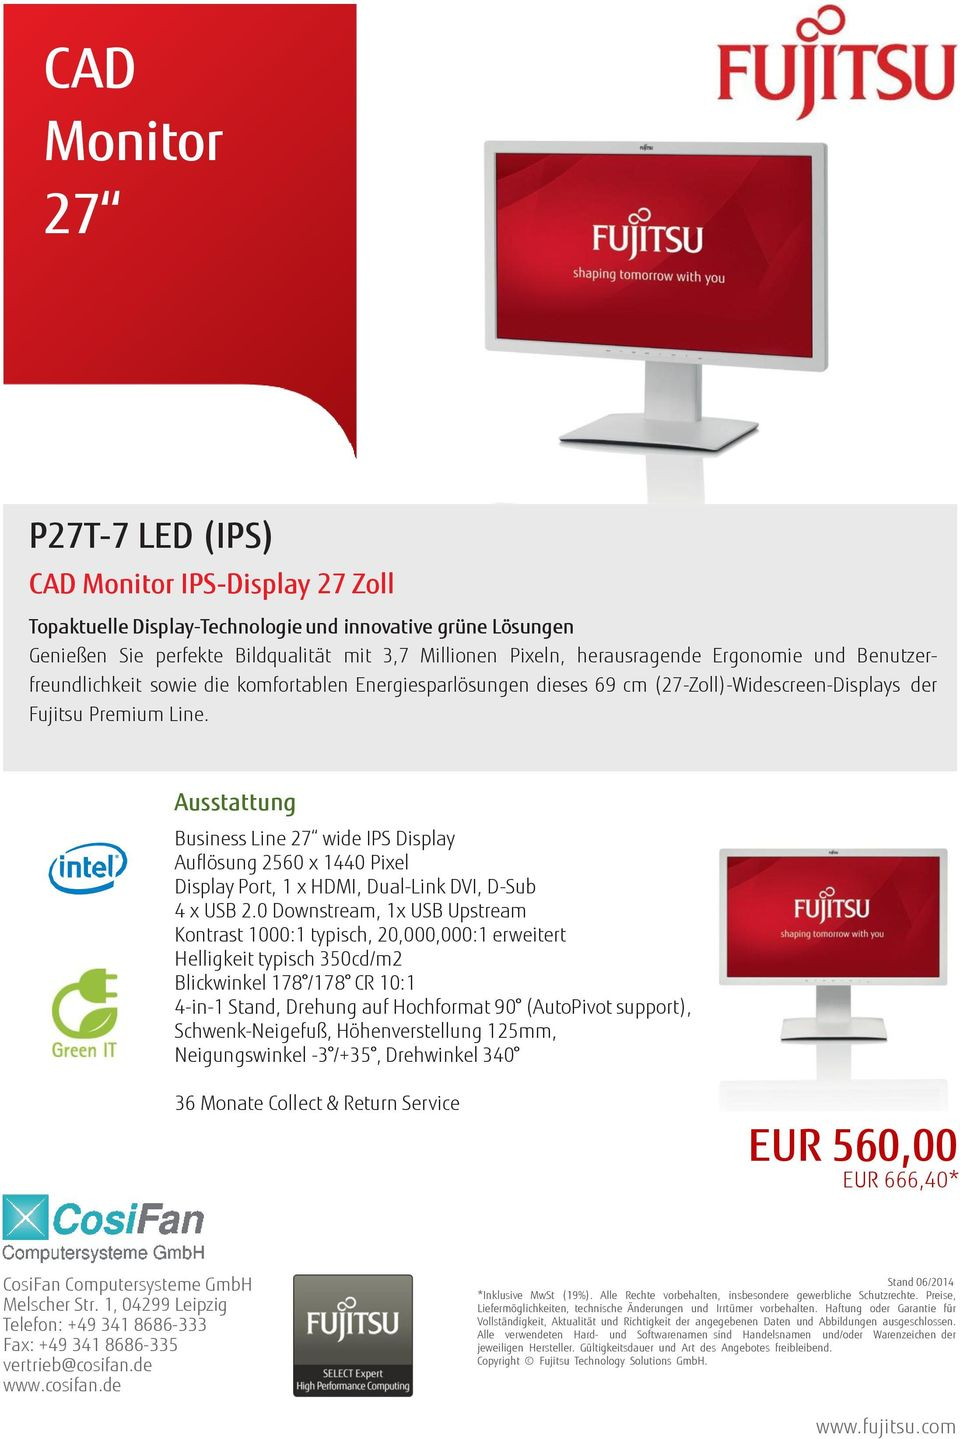 Business Line 27 wide IPS Display Auflösung 2560 x 1440 Pixel Display Port, 1 x HDMI, Dual-Link DVI, D-Sub 4 x USB 2.